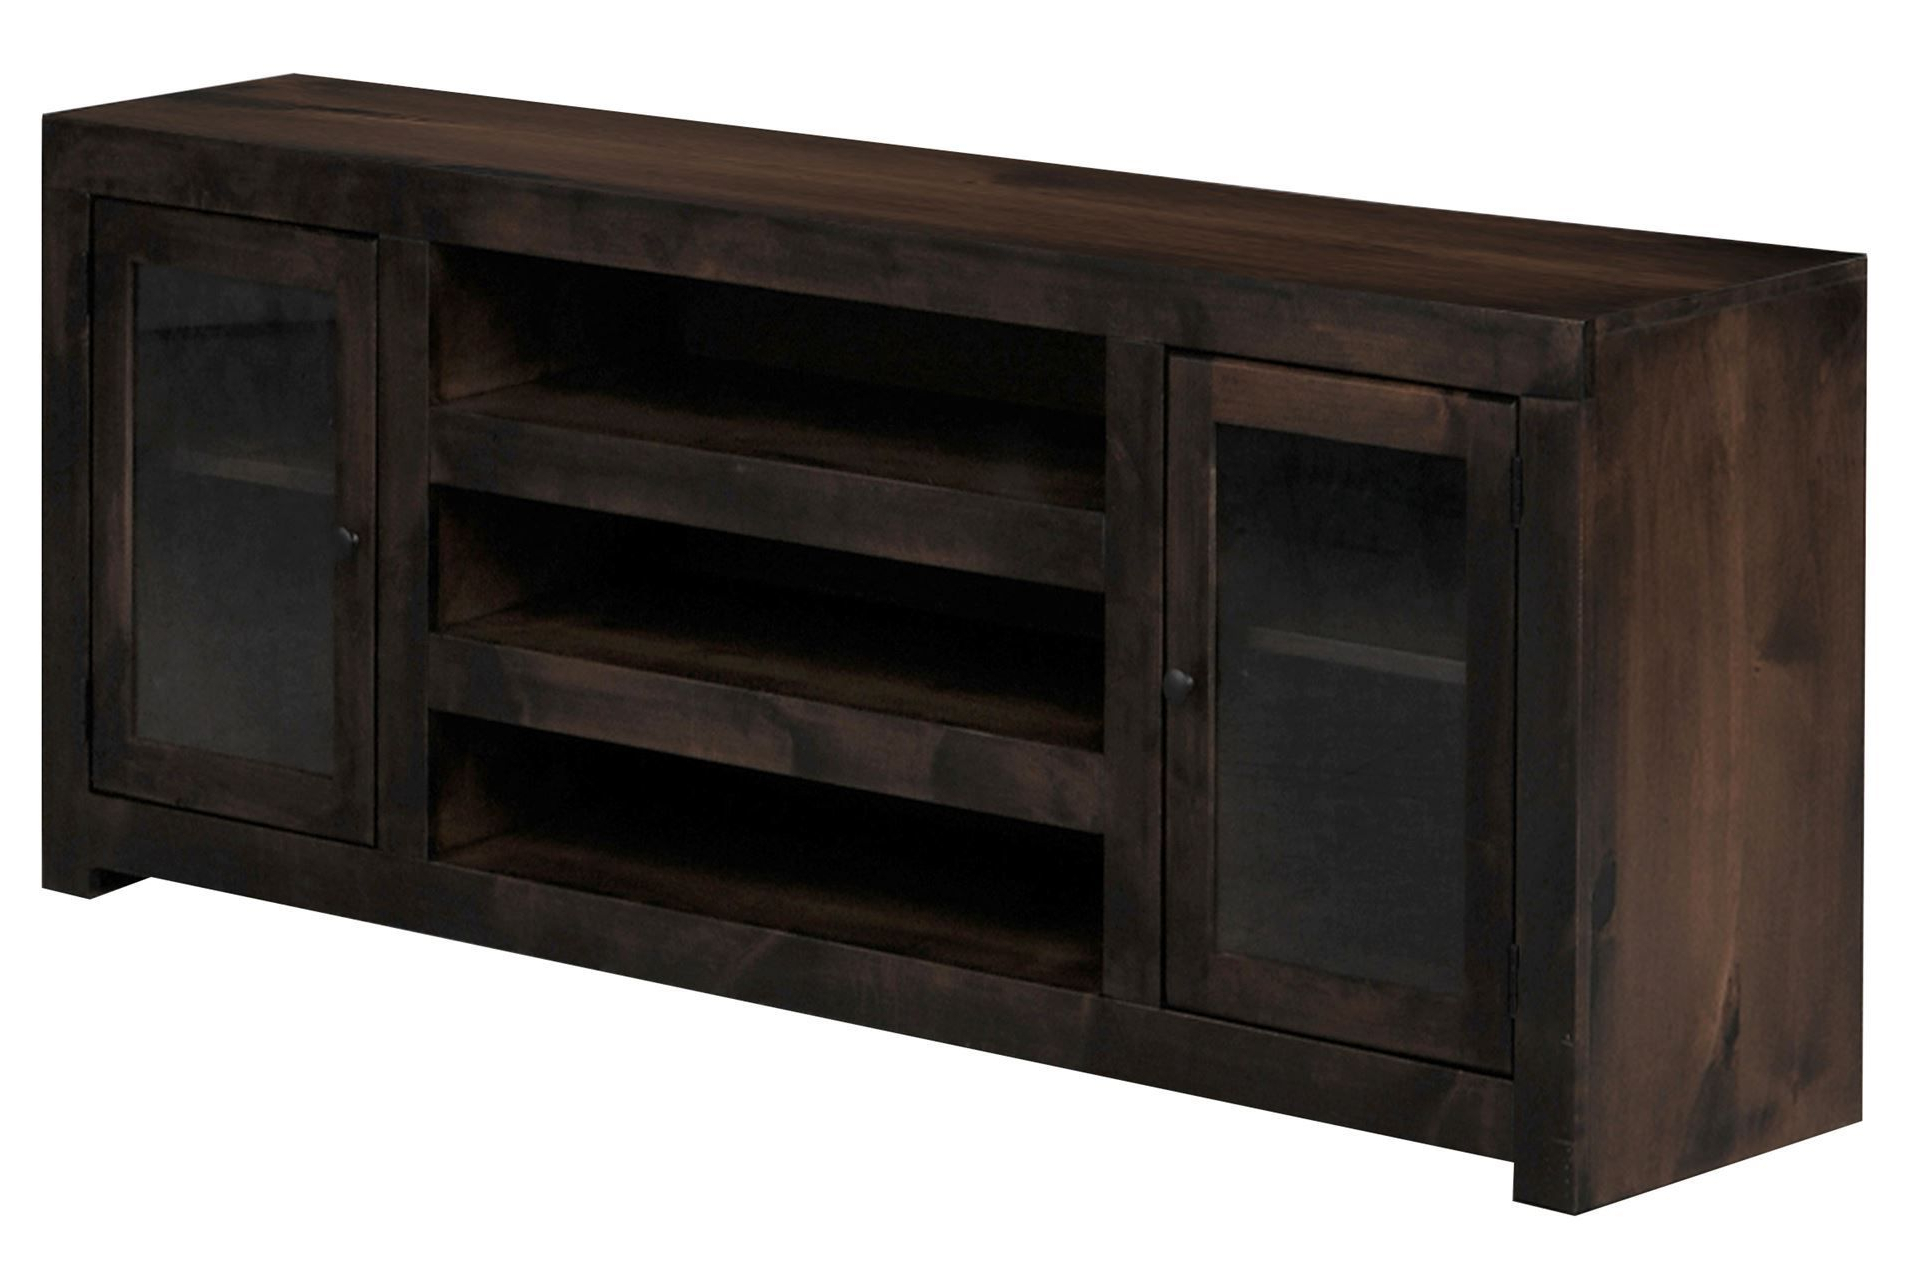 Walton 72 Inch Tv Stand | Man Cave | Pinterest | Tvs, Console And Pertaining To Walton 72 Inch Tv Stands (Gallery 1 of 20)